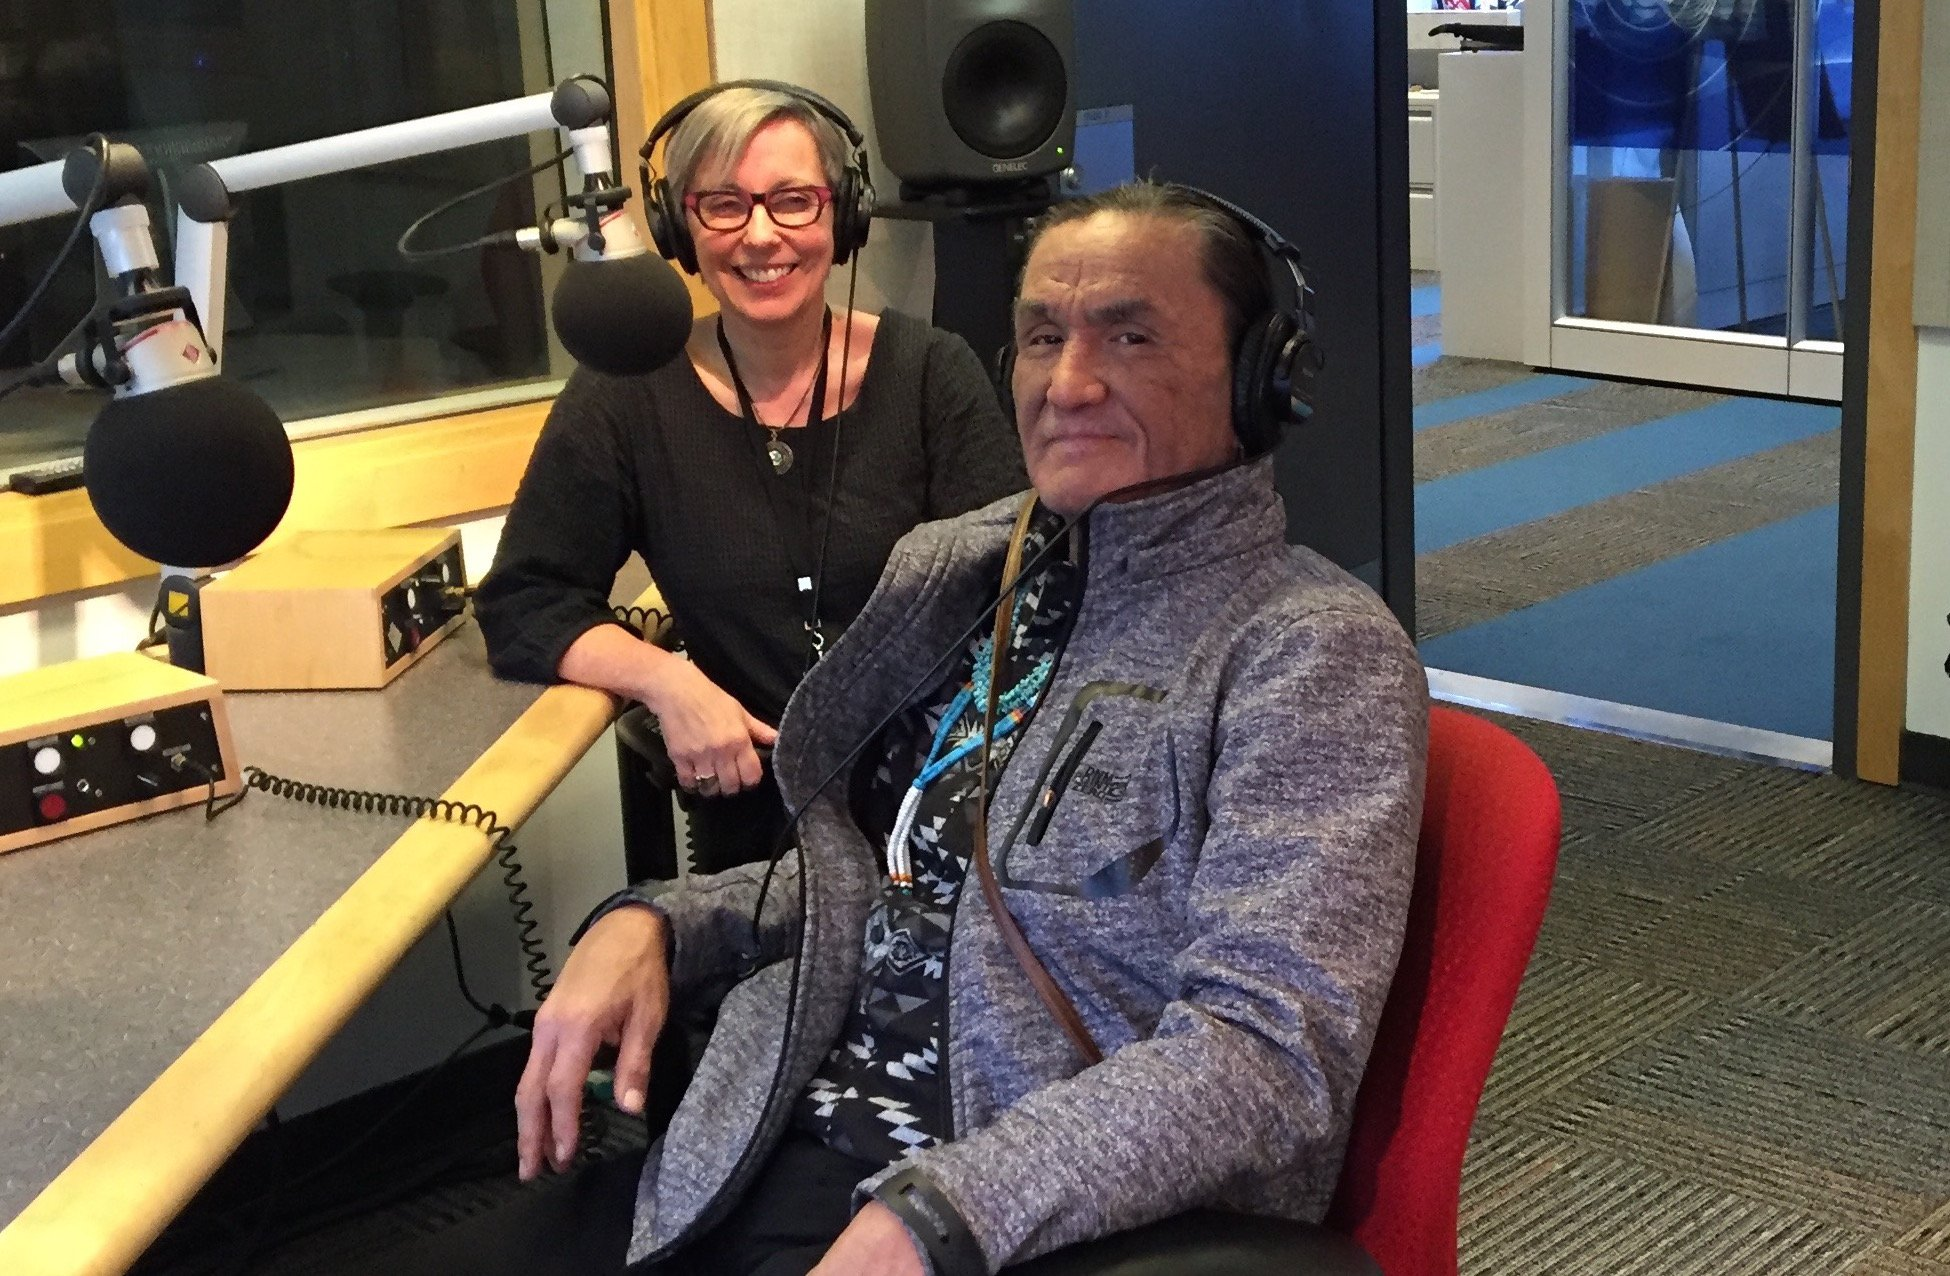 @DuaneE_Howard will be on @cbcradio's  @nxnwcbc w/ @sherylmackay in 20 mins Here all about being in @RevenantMovie https://t.co/2ndKC0hRto